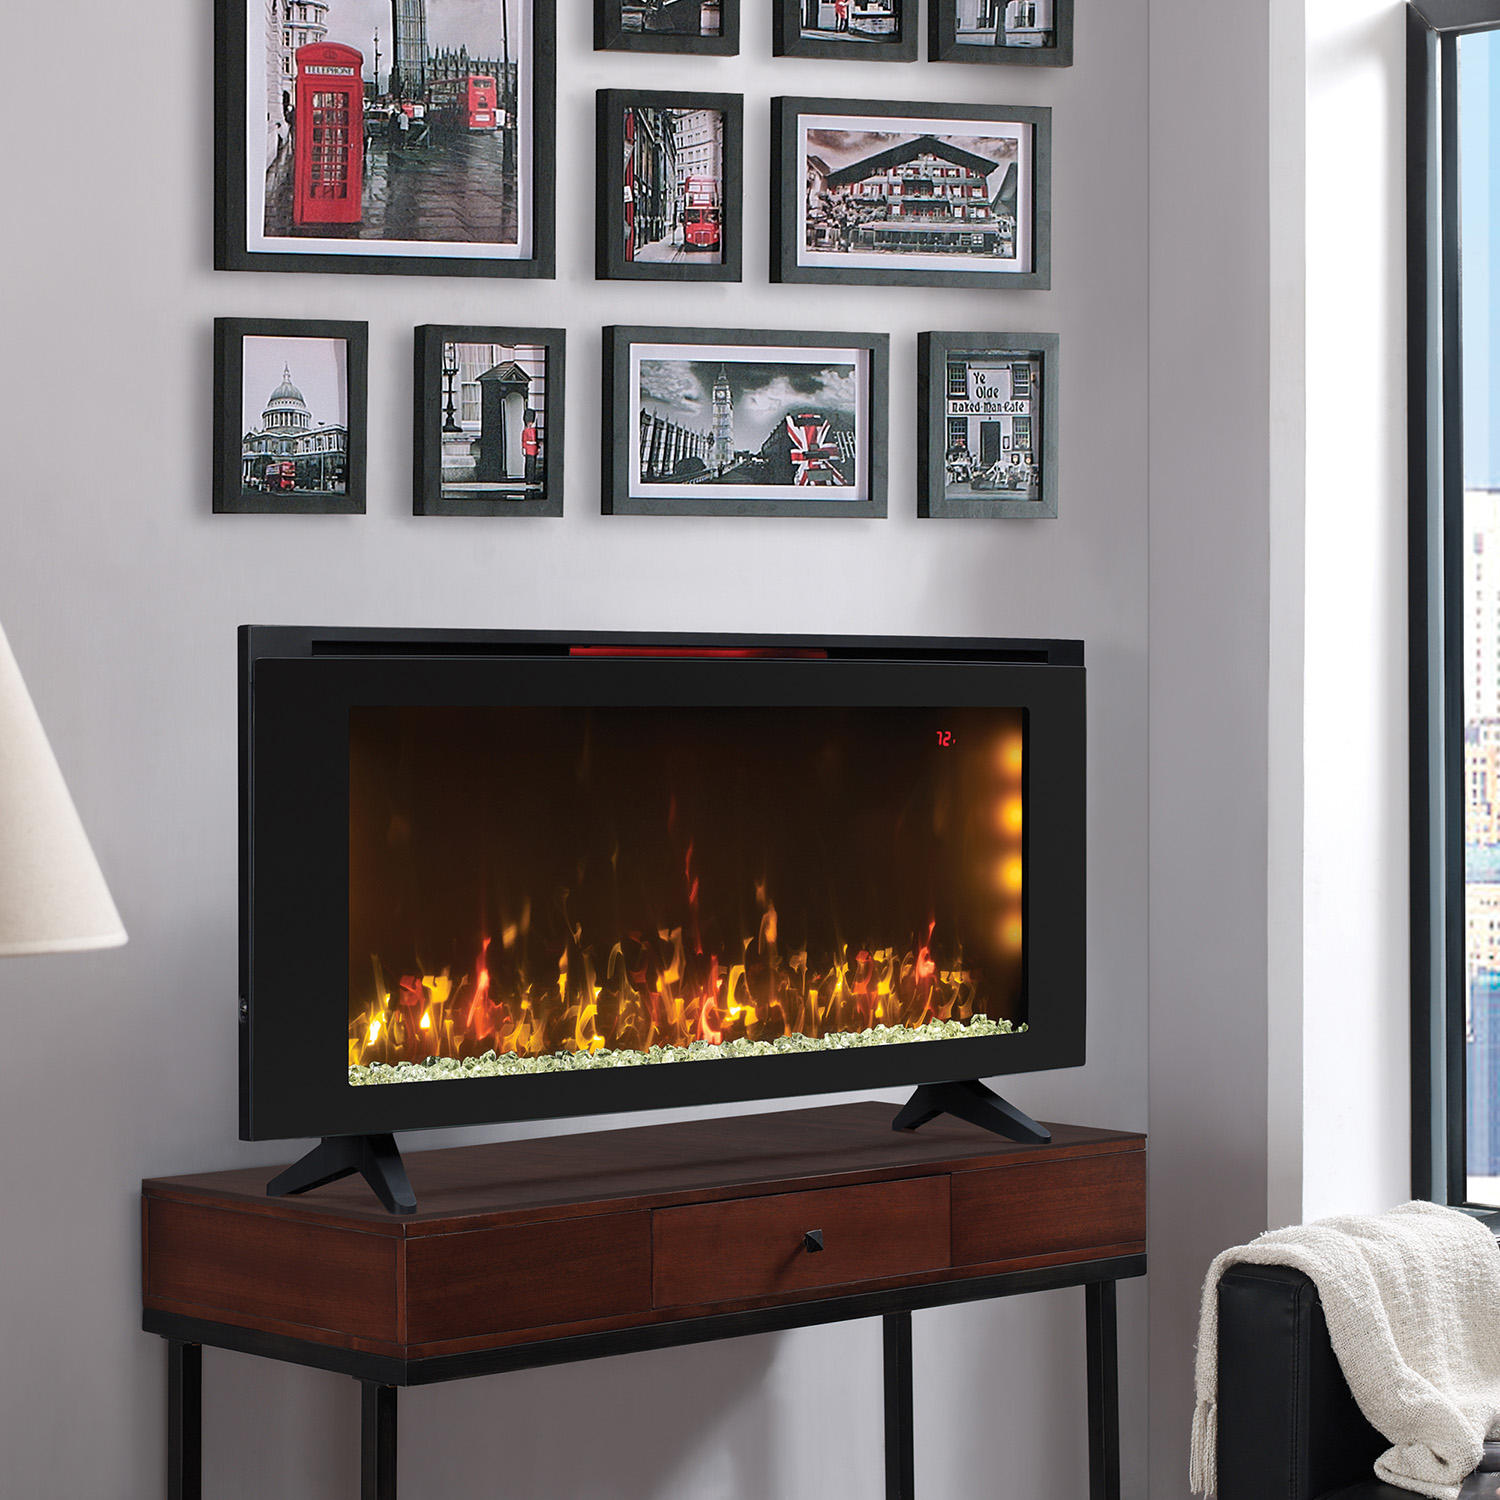 "Classicflame 42"" Wall-Mounted Infrared Electric Fireplace Heater"